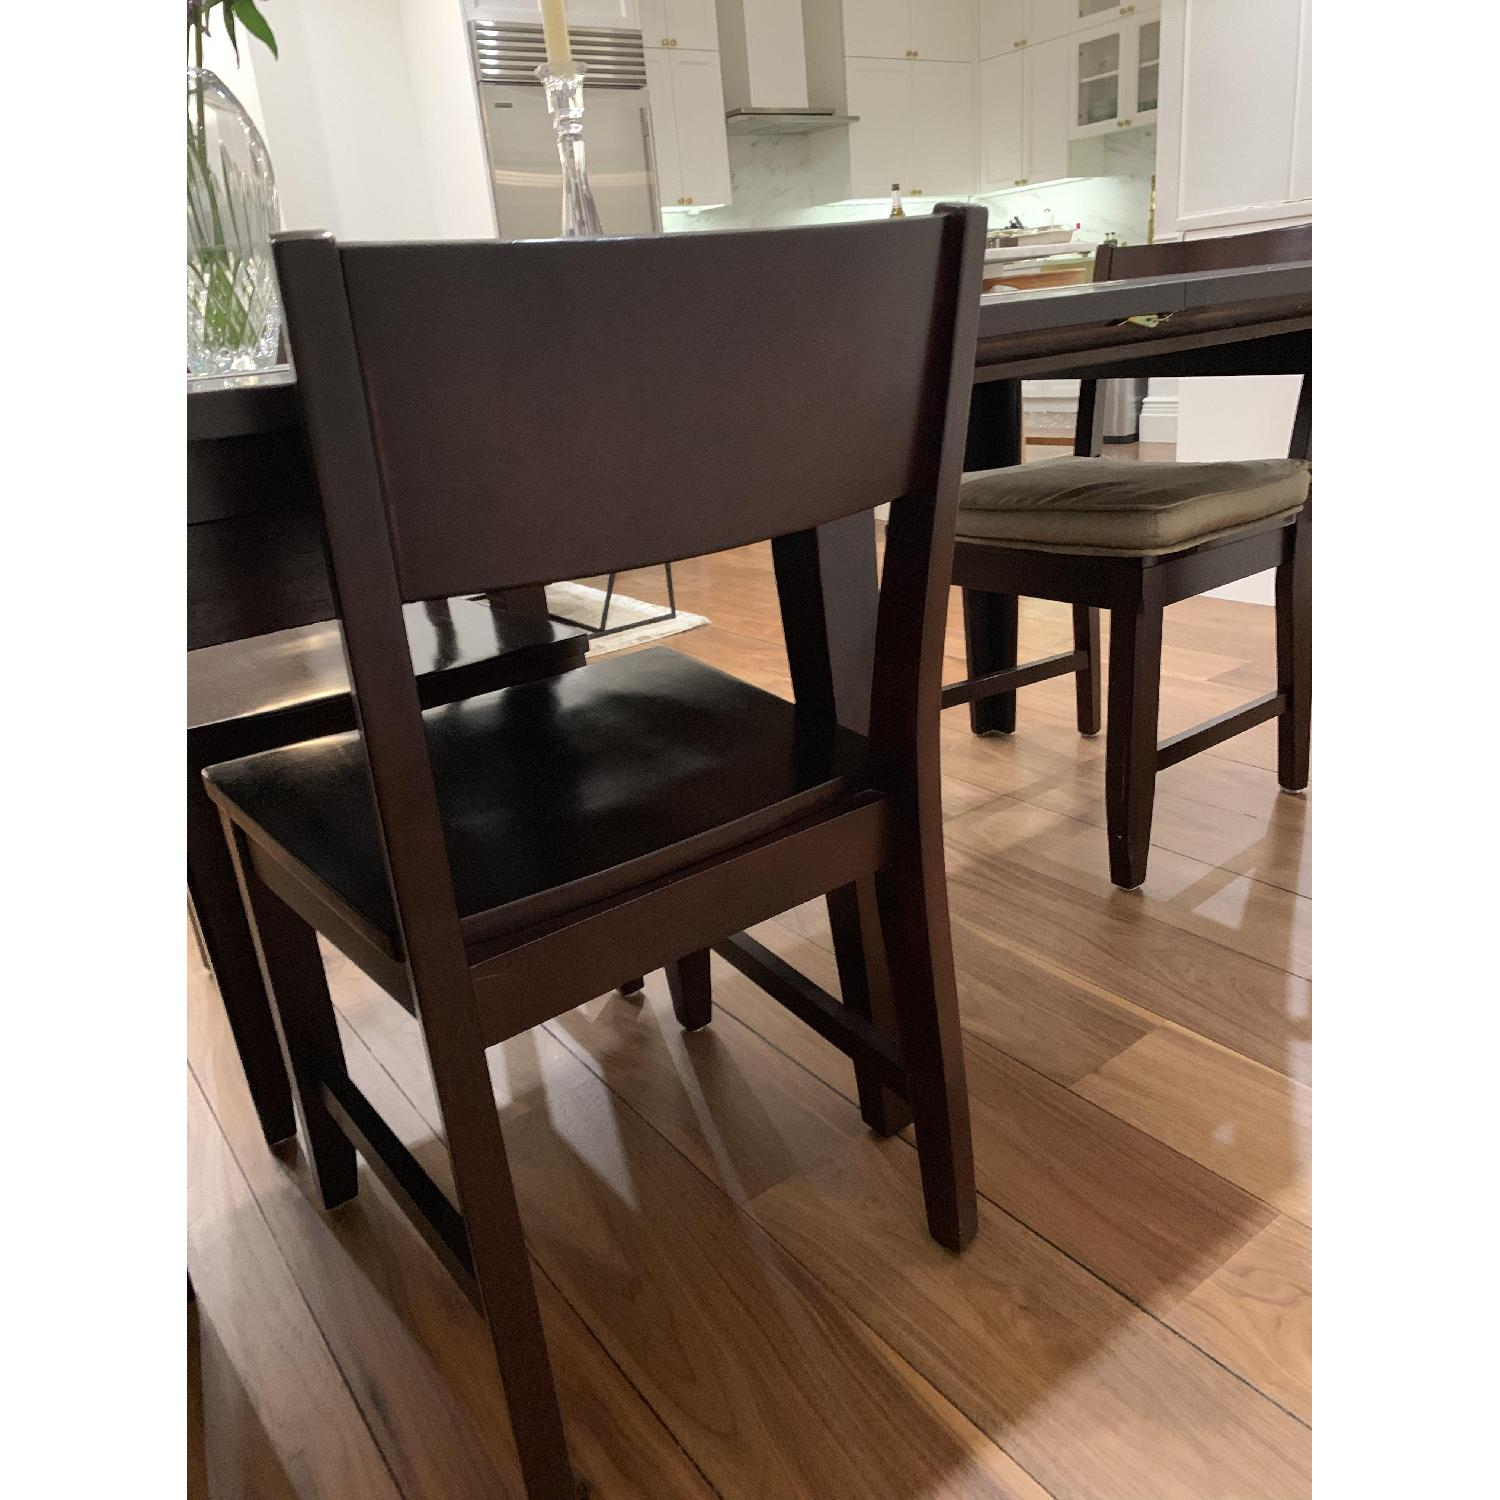 Montreal Espresso Wood Chairs - image-16